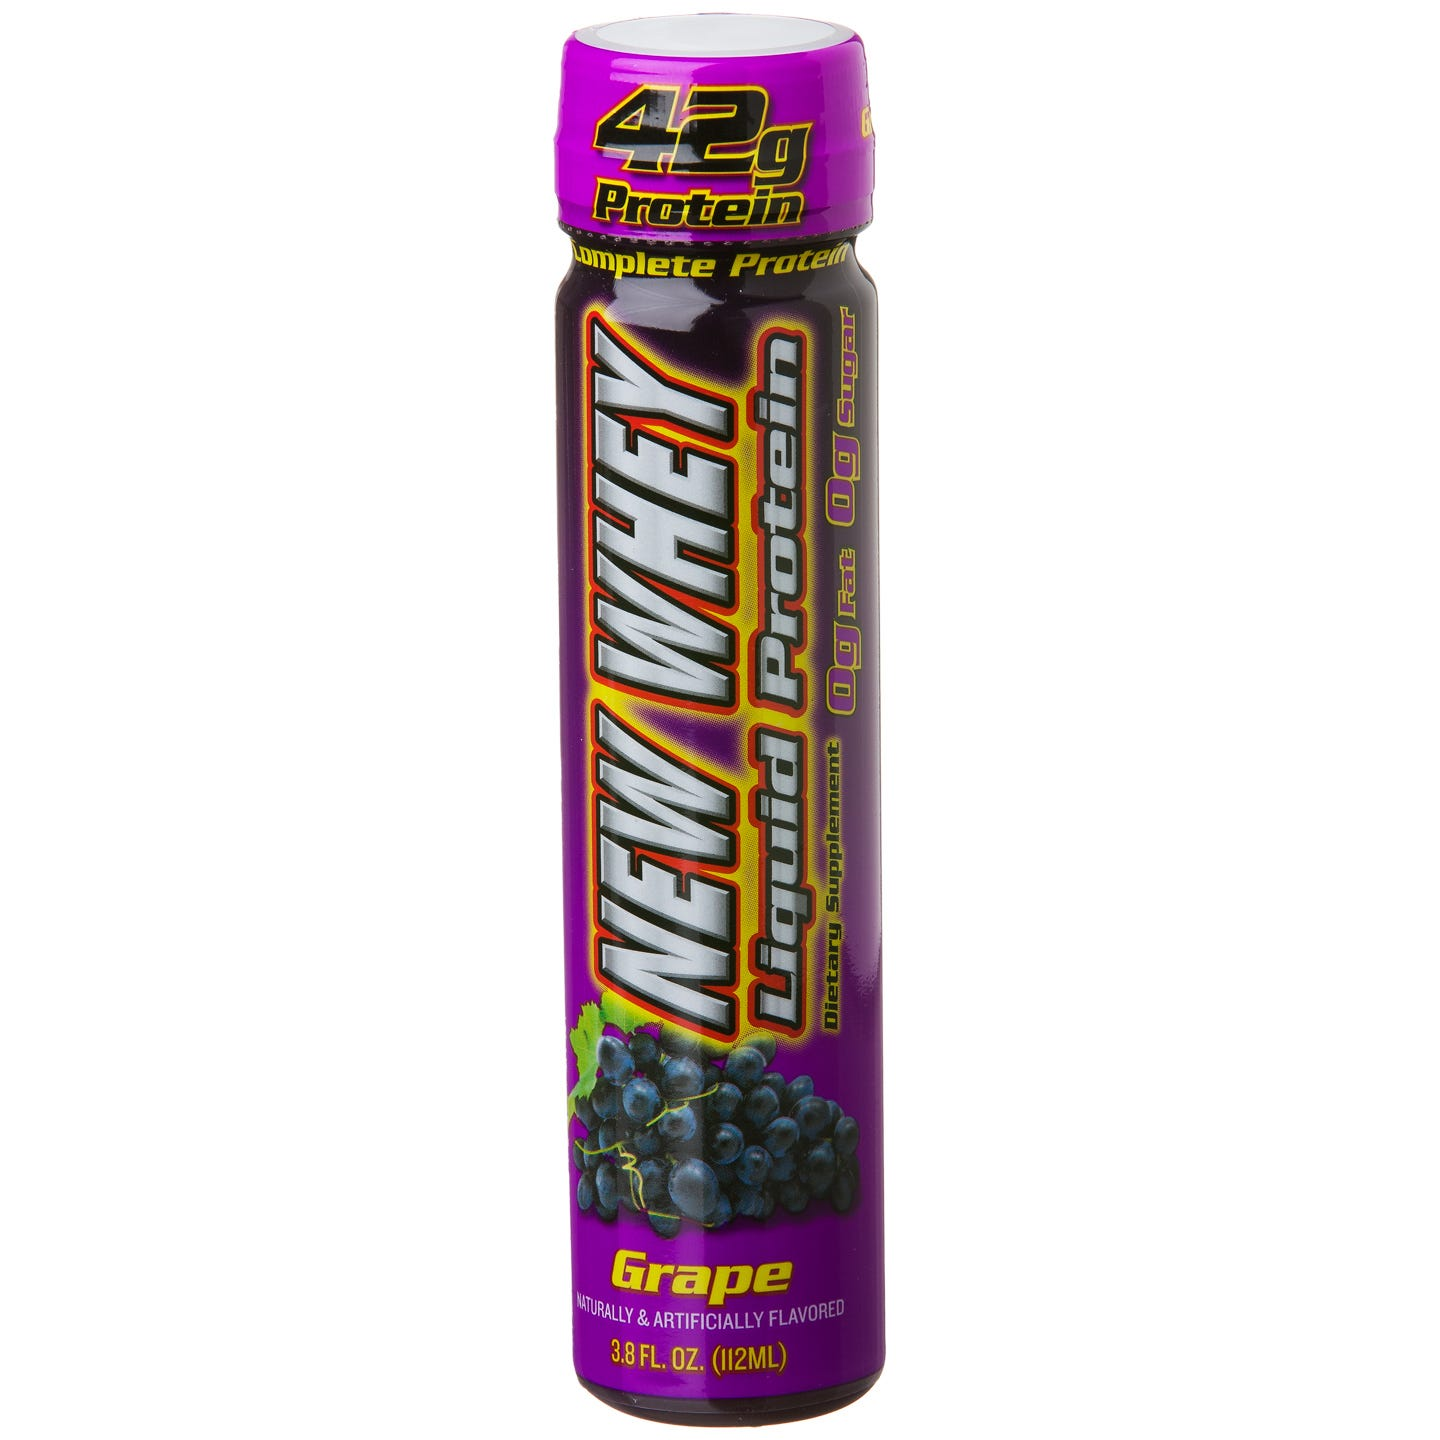 IDS New-Whey Liquid Protein, 42 g Protein - Grape